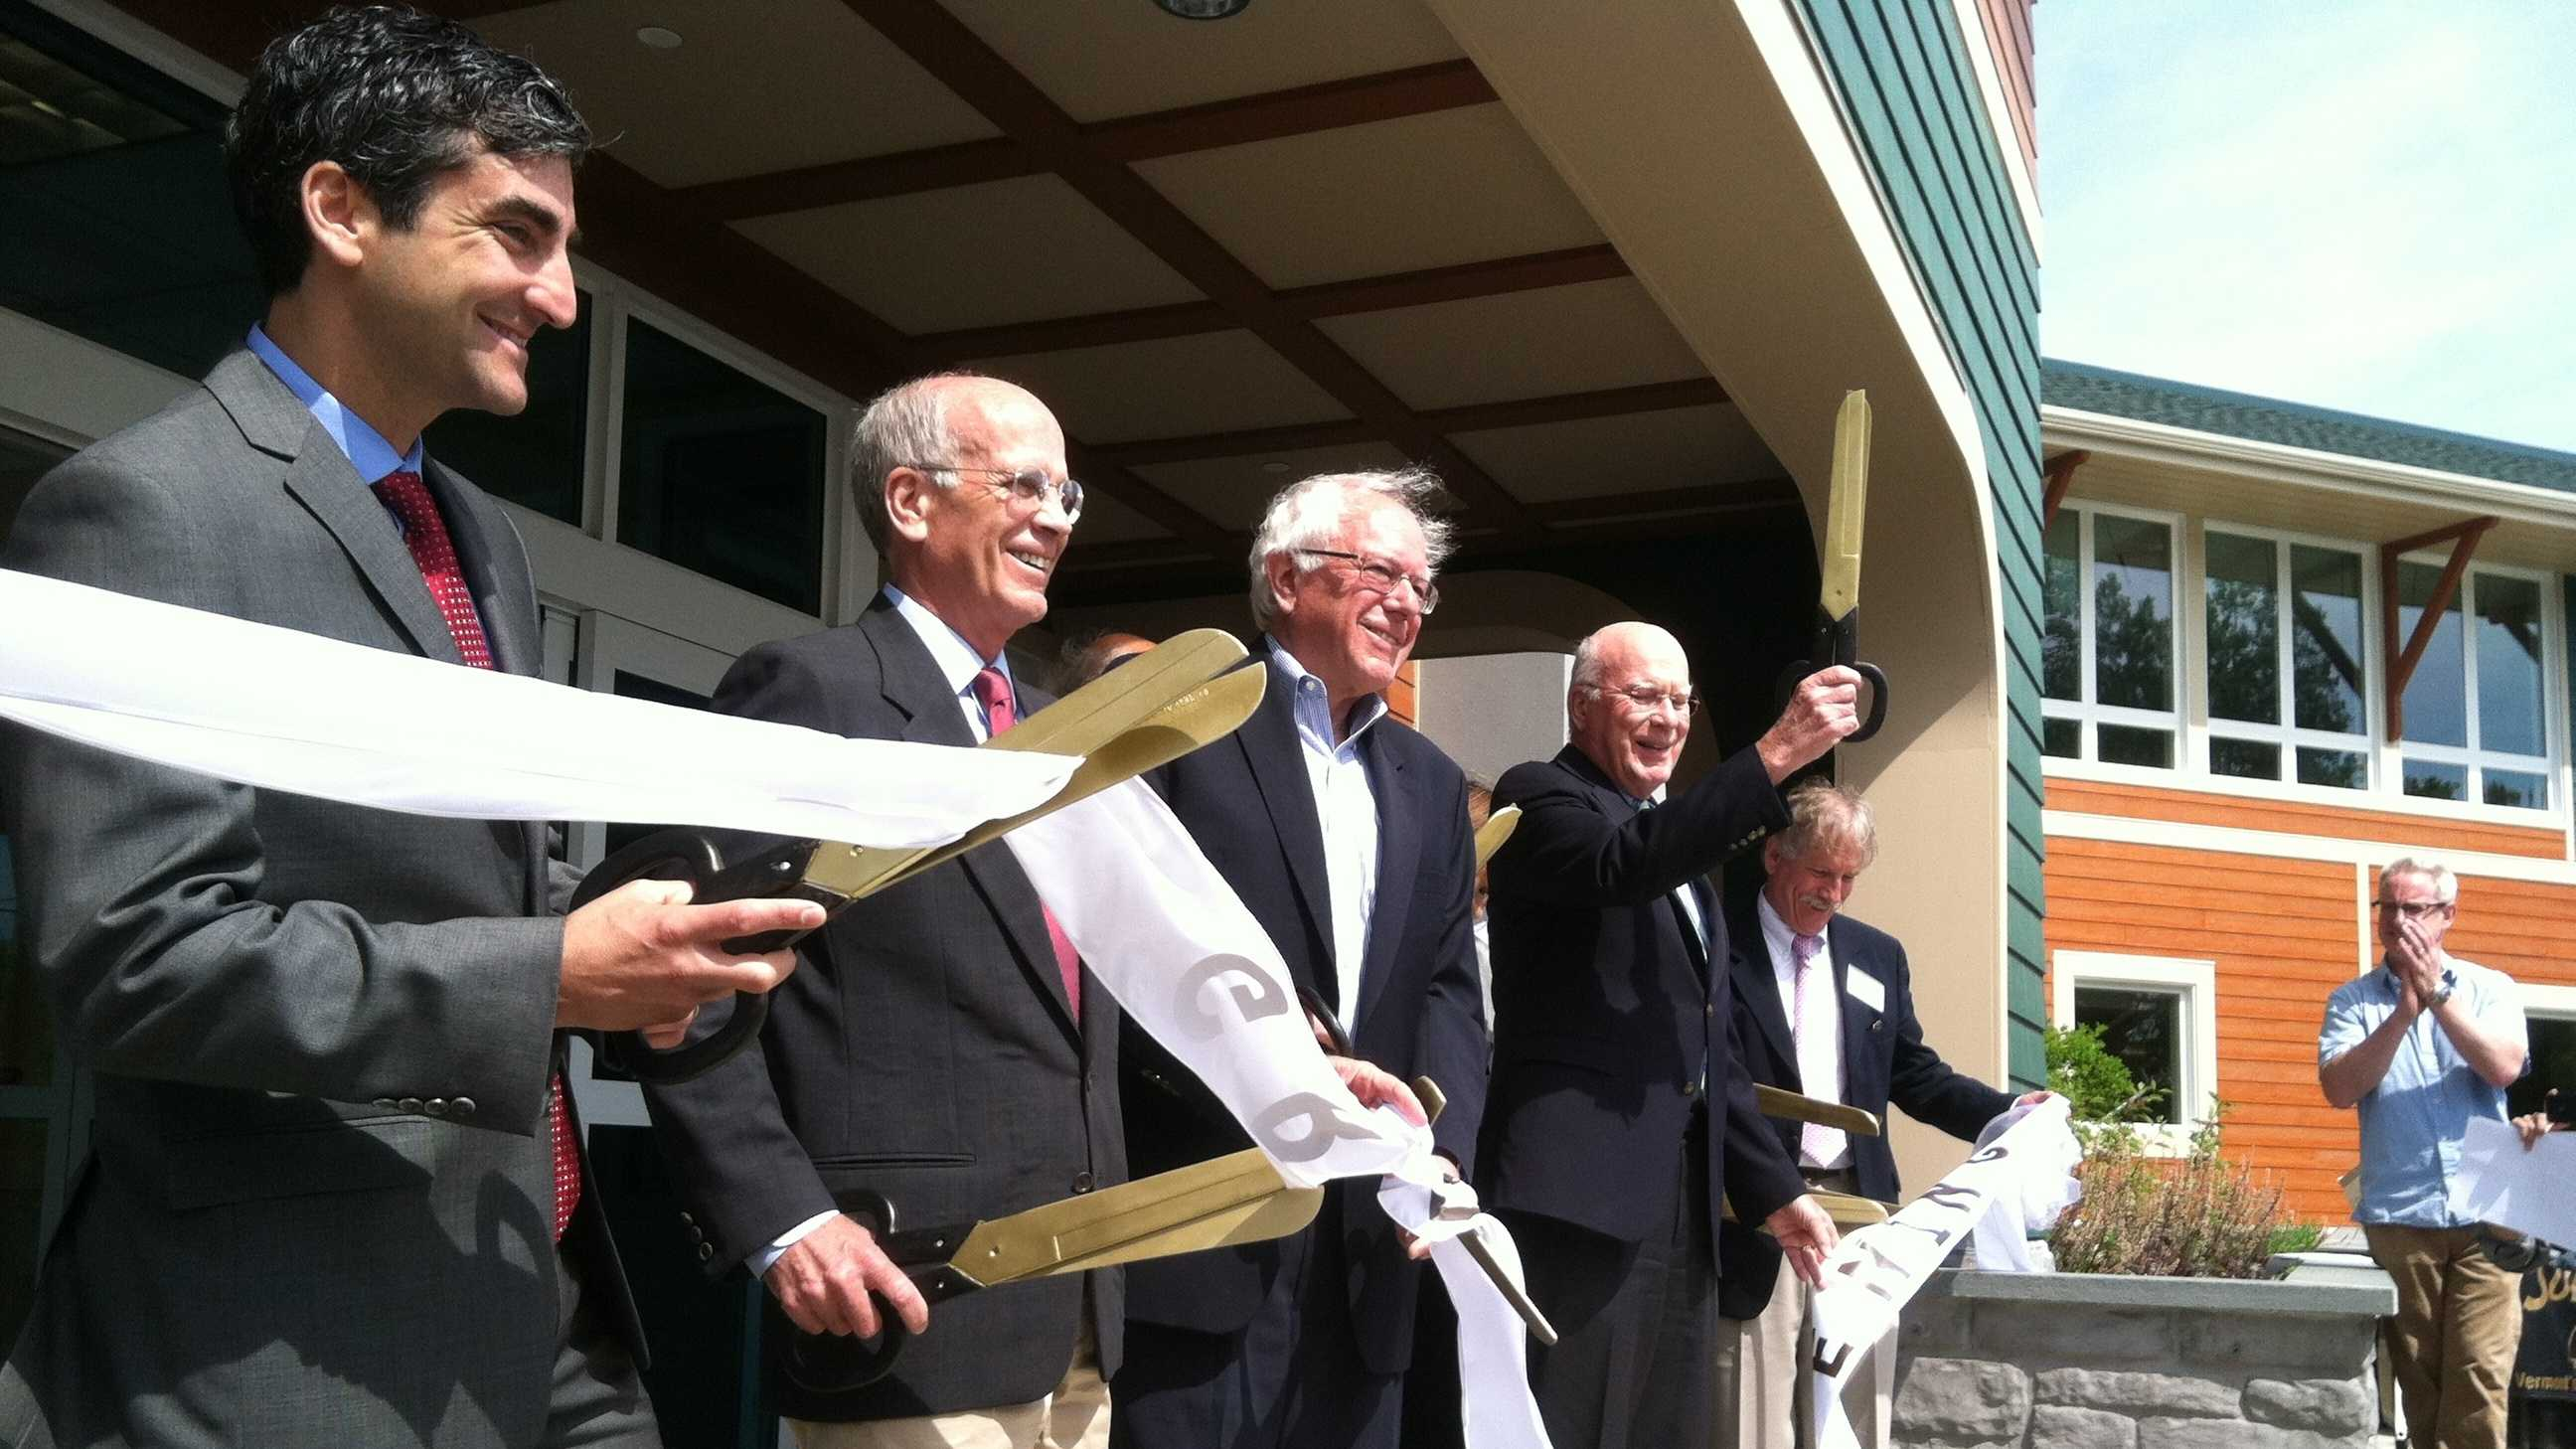 Vermont's congressional delegation cuts a ceremonial ribbon marking completion of an $11 million expansion of the Community Health Center of Burlington.